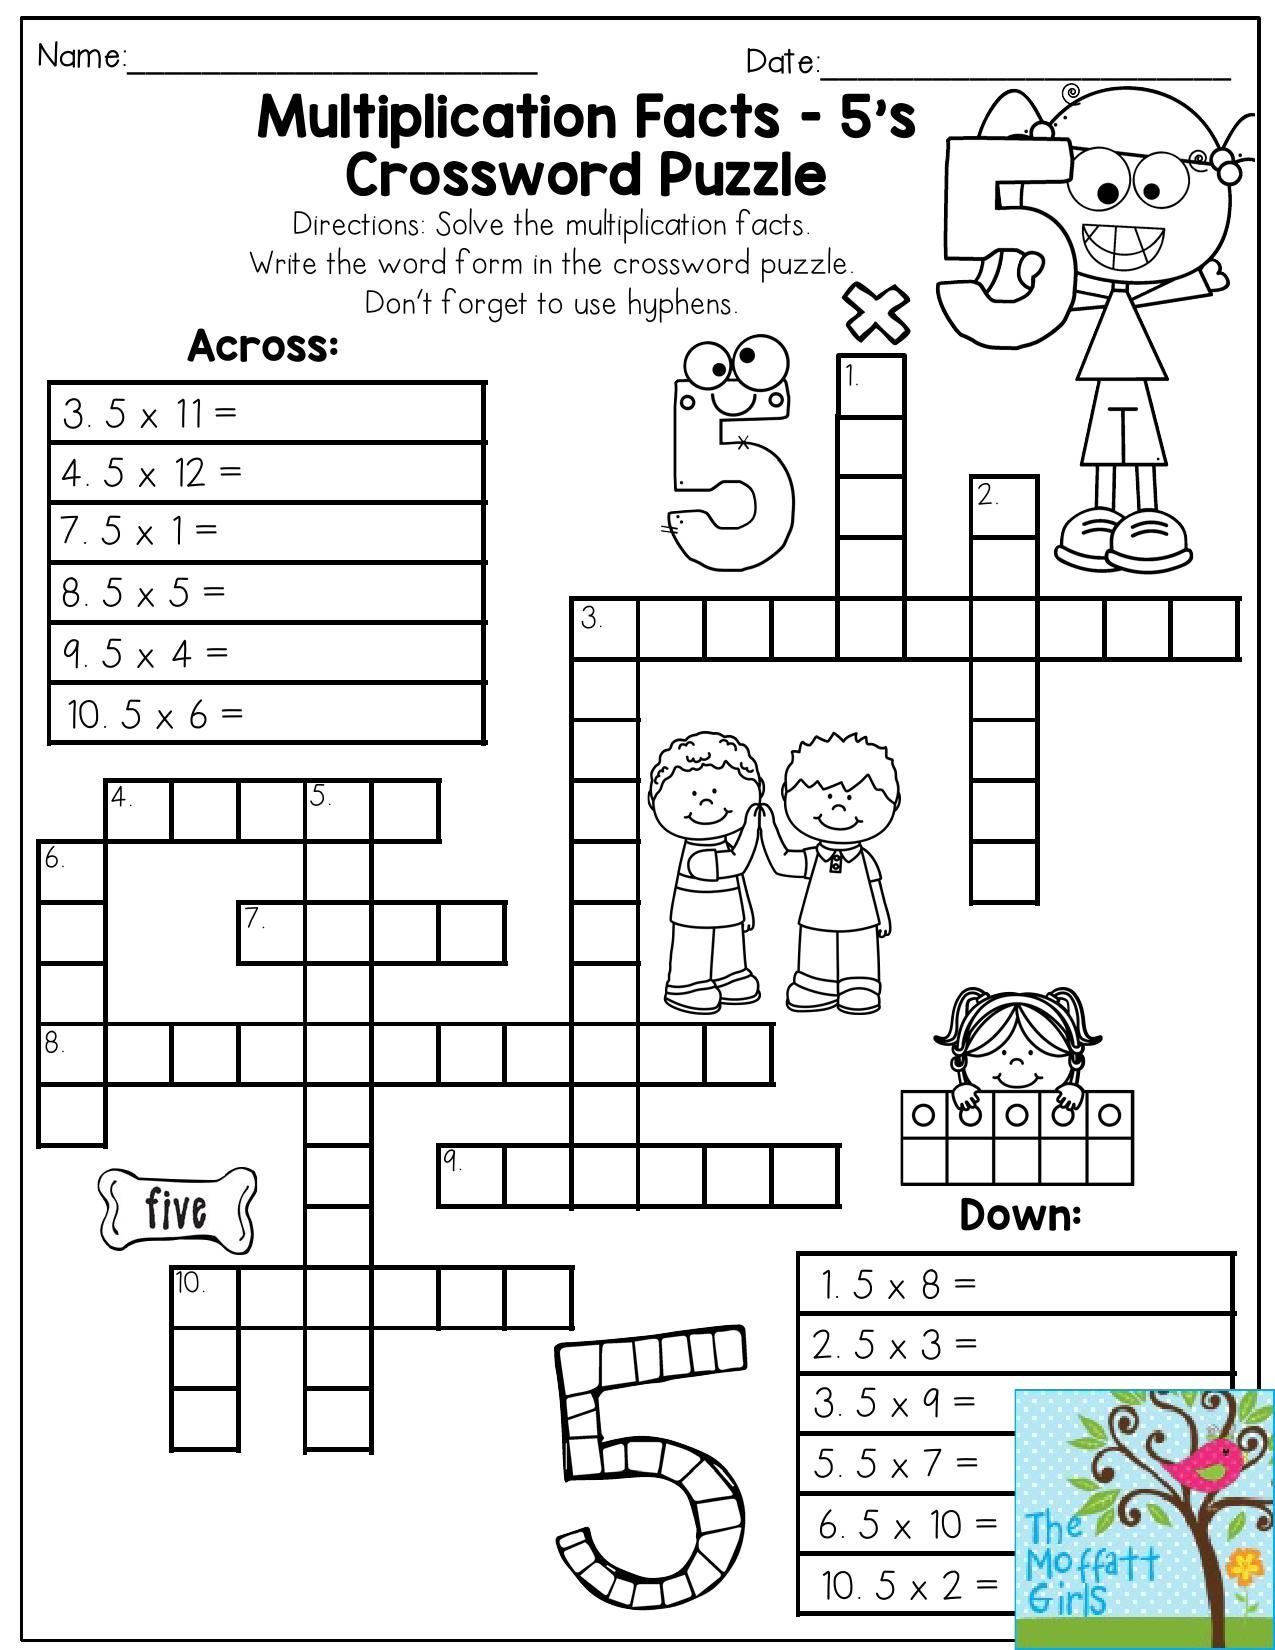 Multiplication Facts Crossword Puzzle Third Grade Students Love This One It Makes Practicing